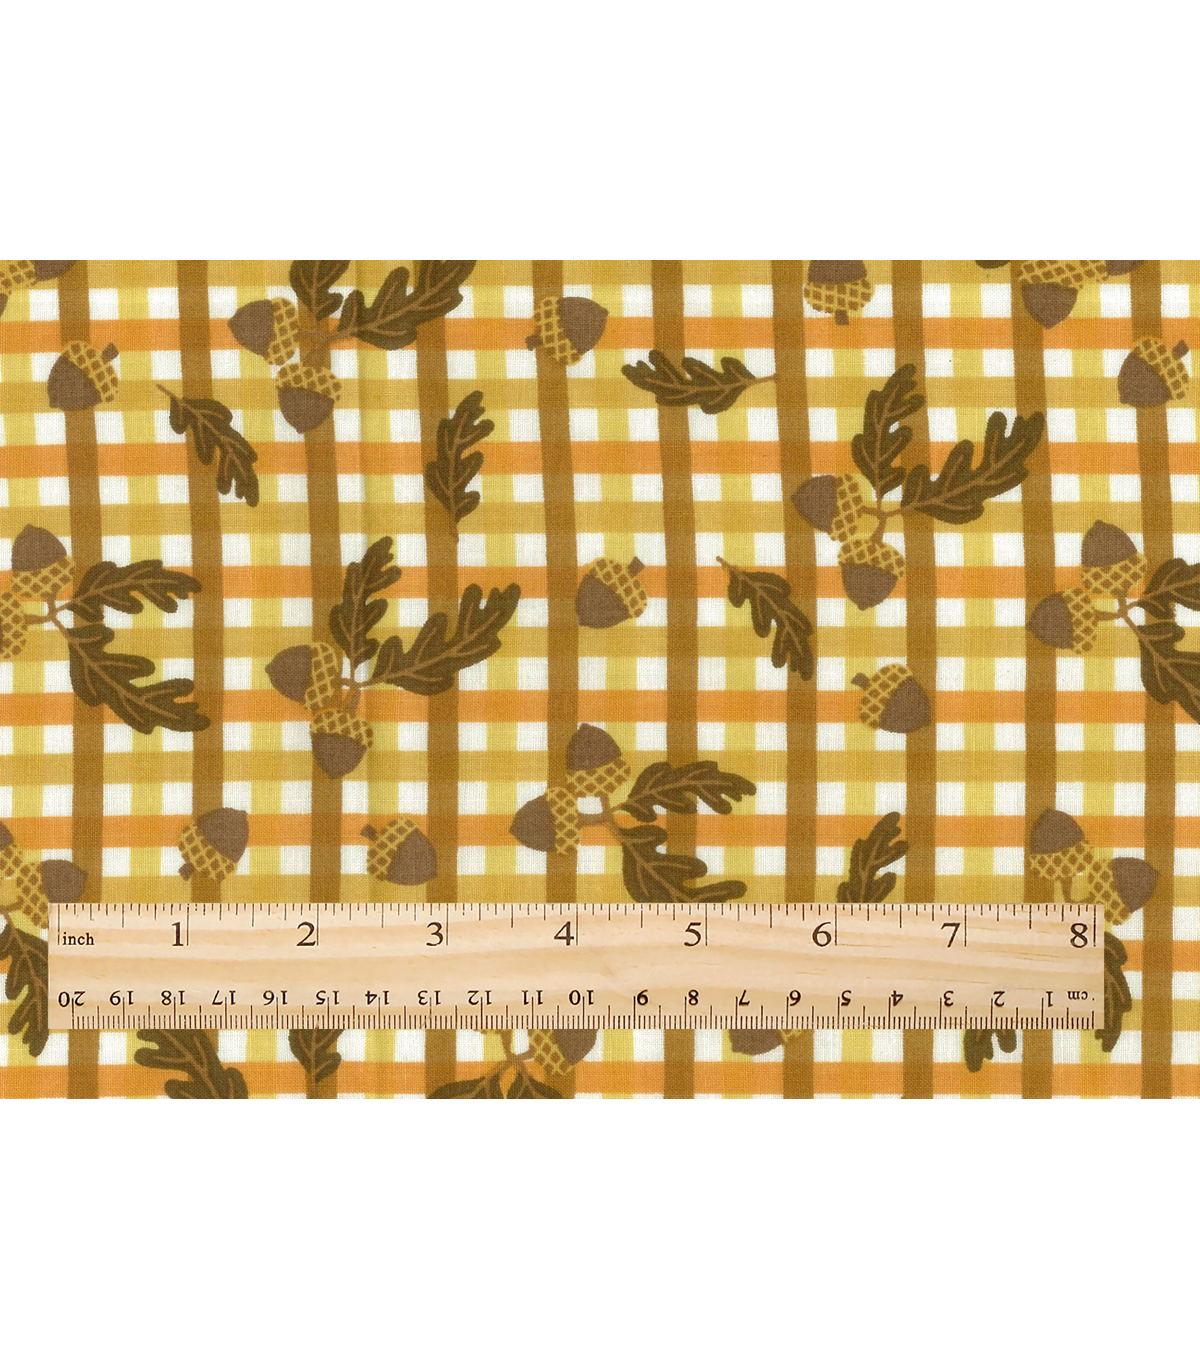 Harvest Cotton Fabric-Acorns On Plaid